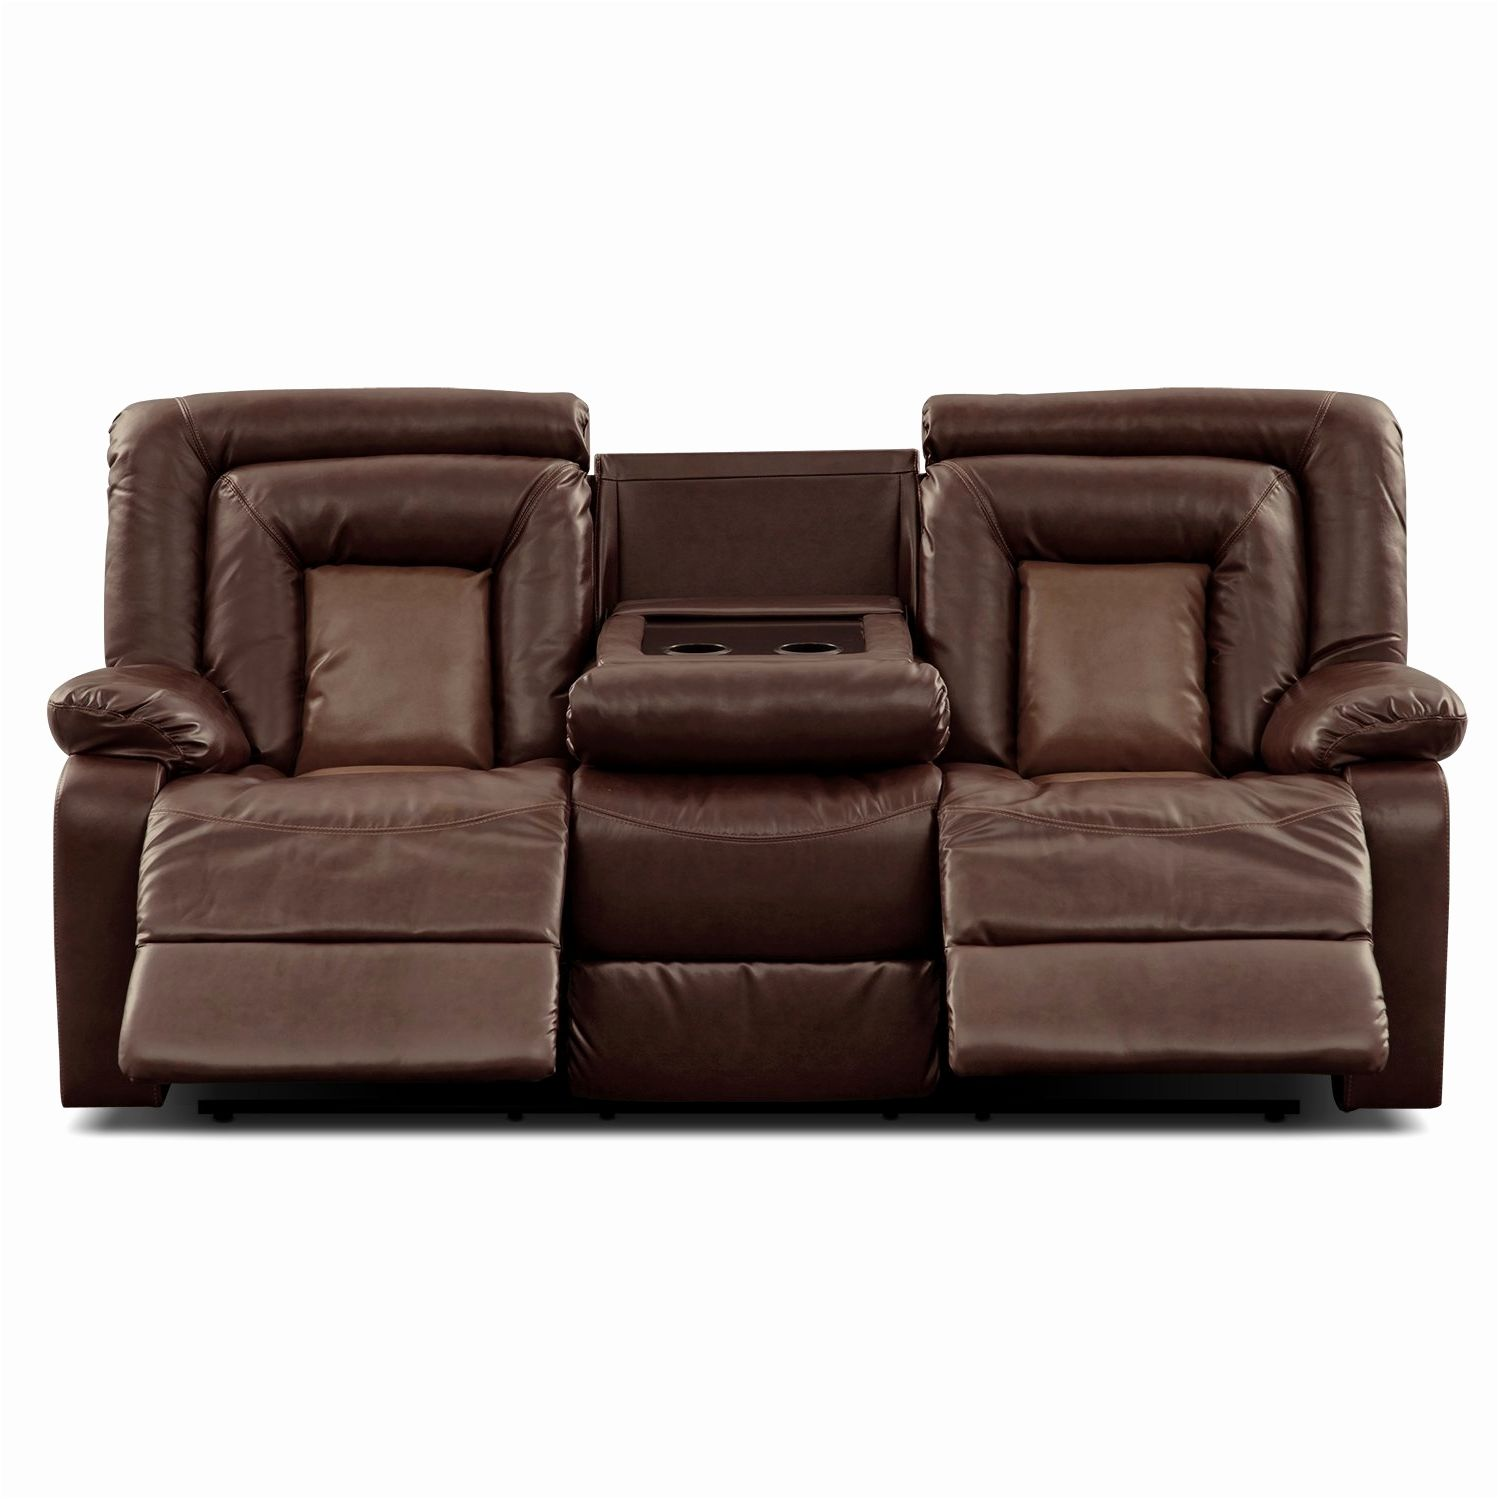 Best Online Sofa Store: Fresh Sofa With Recliner Portrait